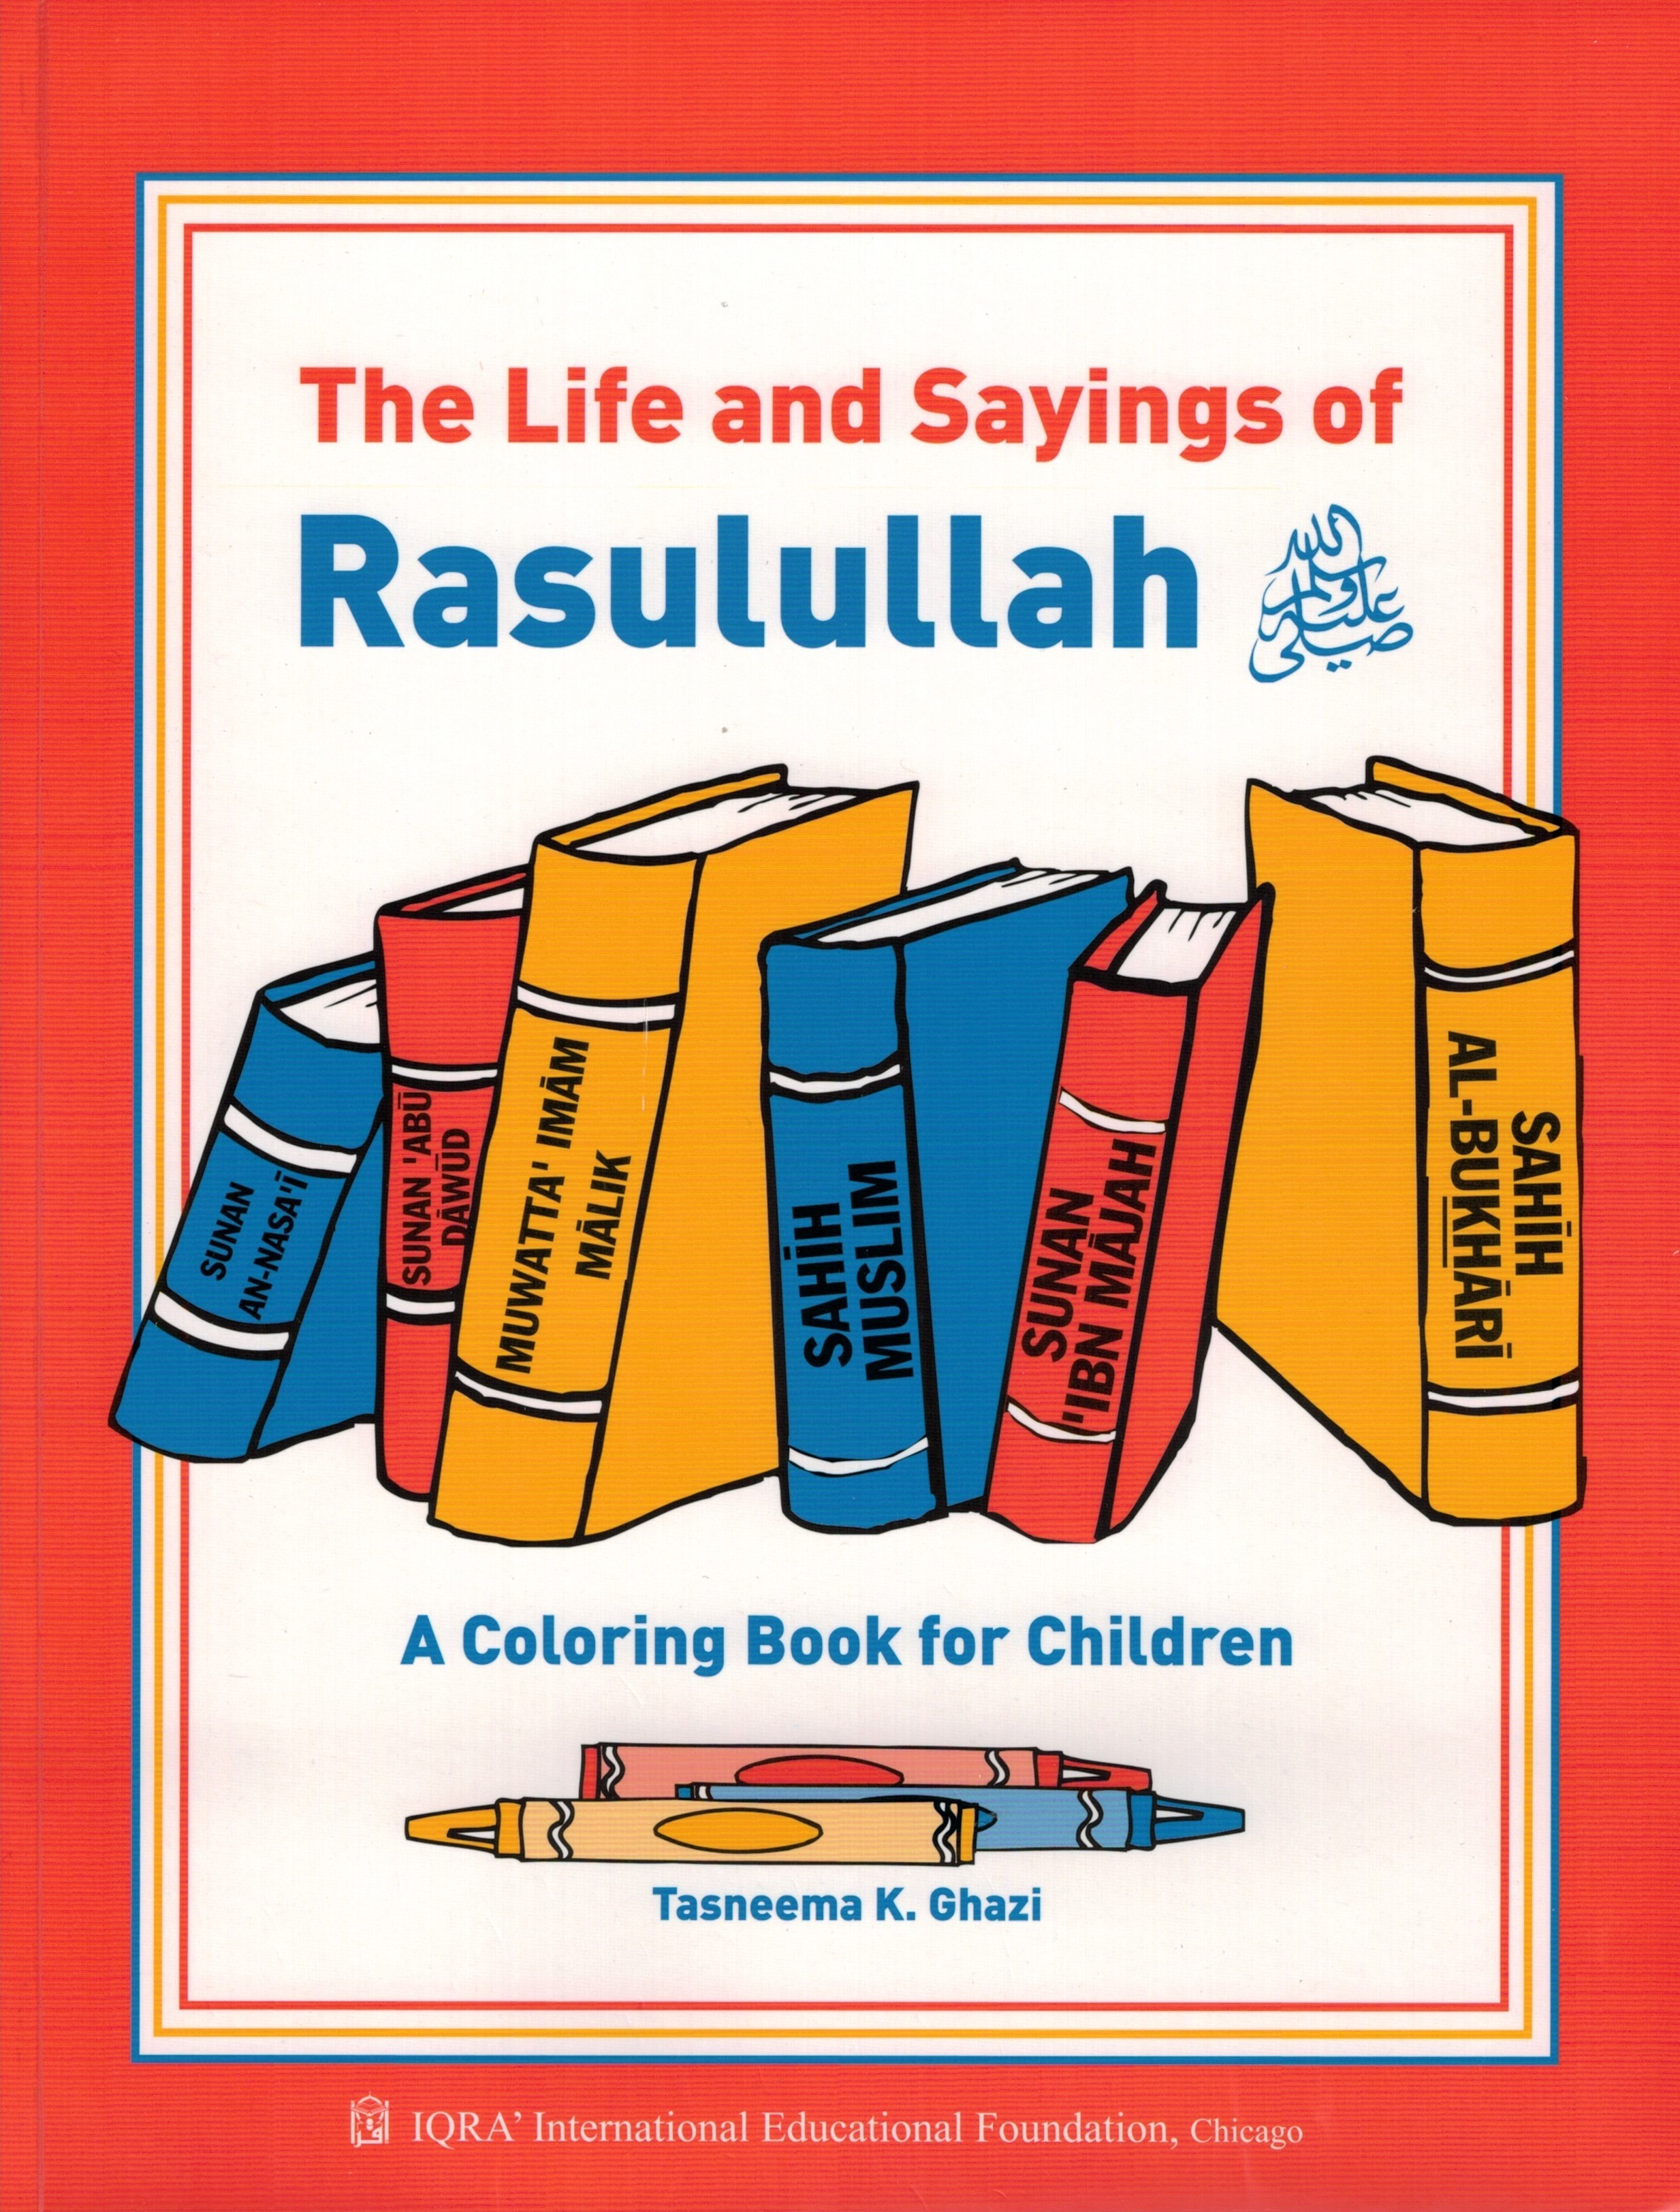 The Life and Sayings of Rasulullah A Coloring Book for Children